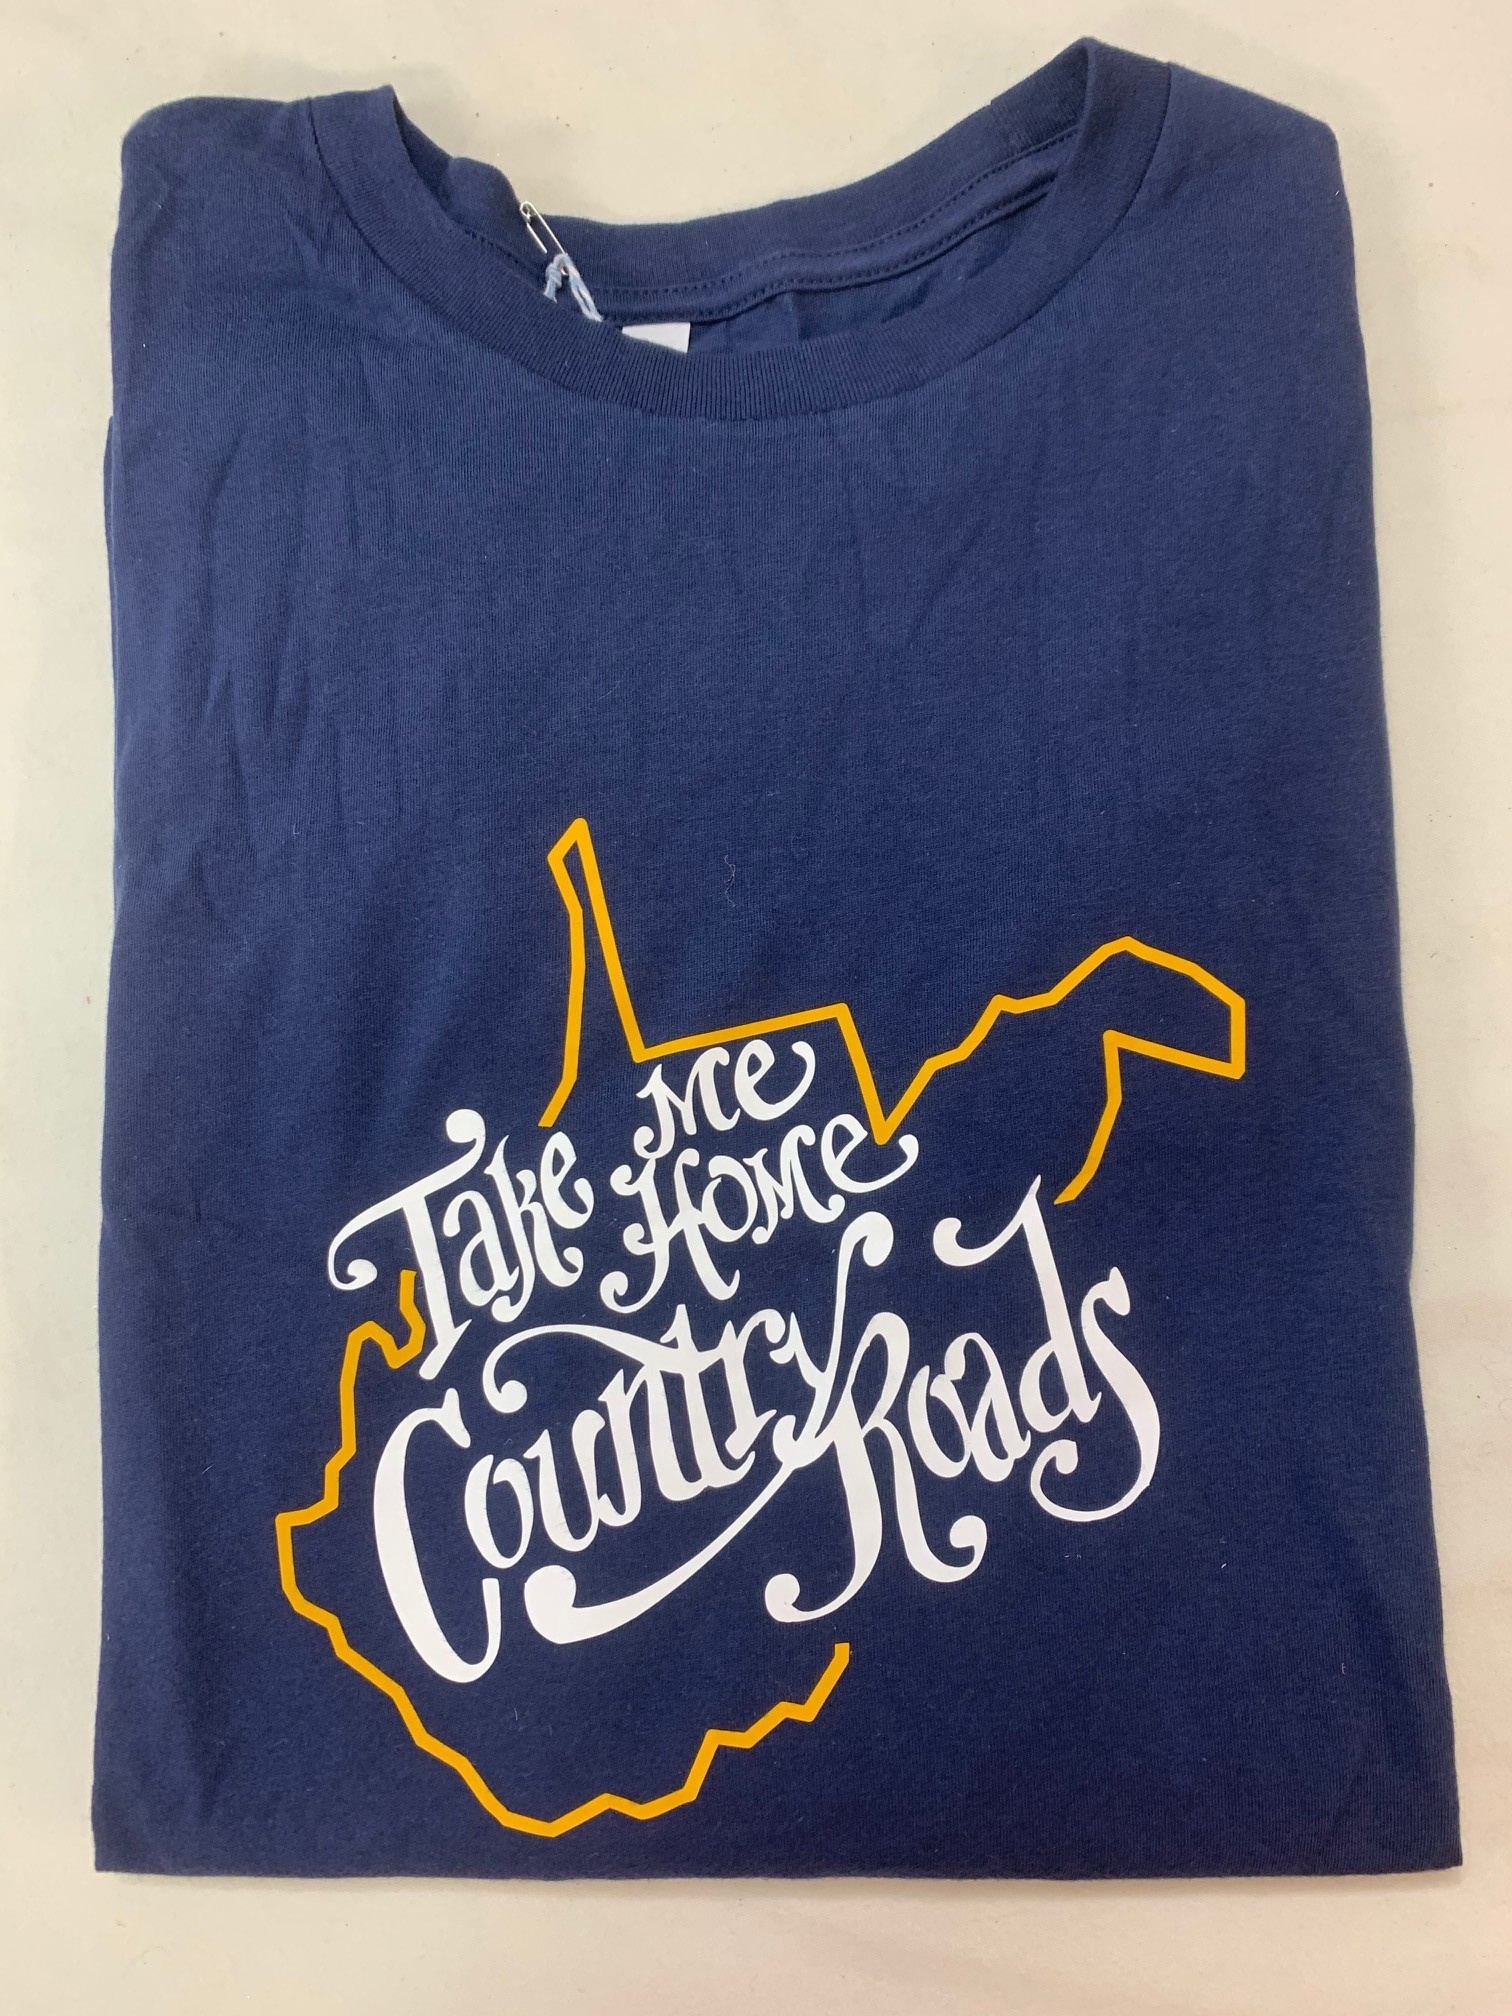 Positive-a-tees Positive-a-tees Take Me Home LS Navy Lg